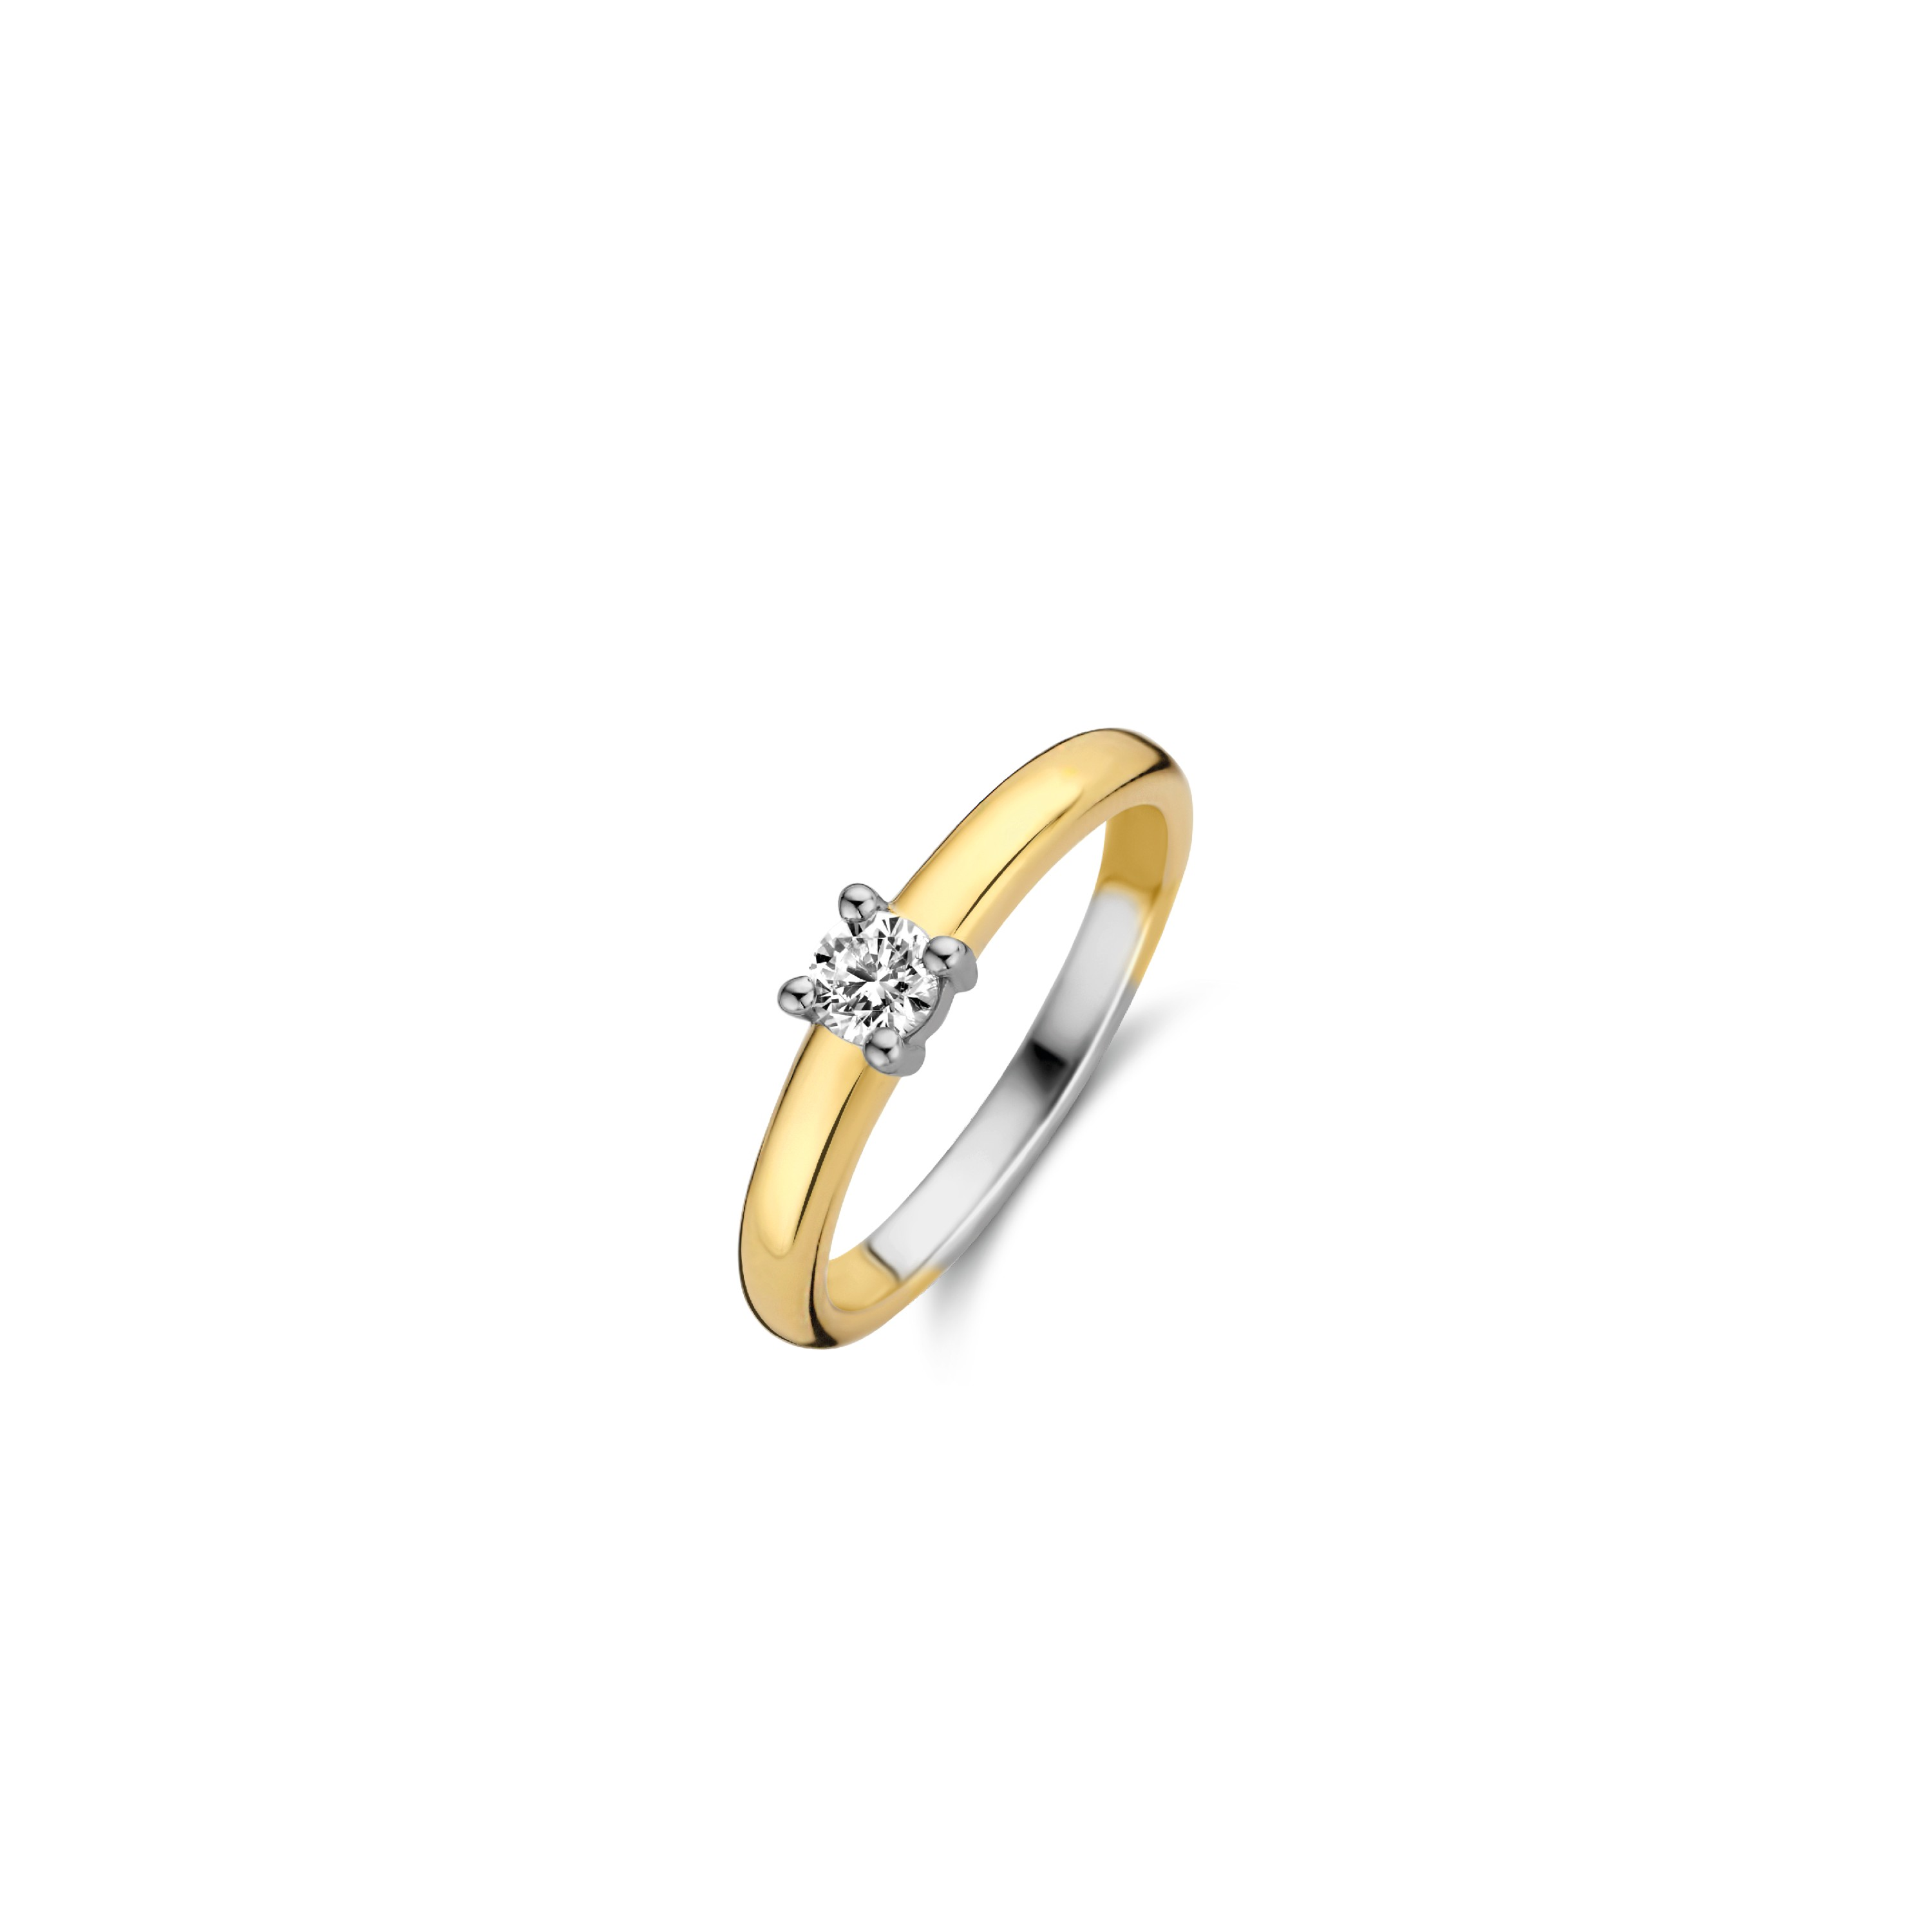 TI SENTO Milano Ring 12212ZY Zilver gold plated Maat 62